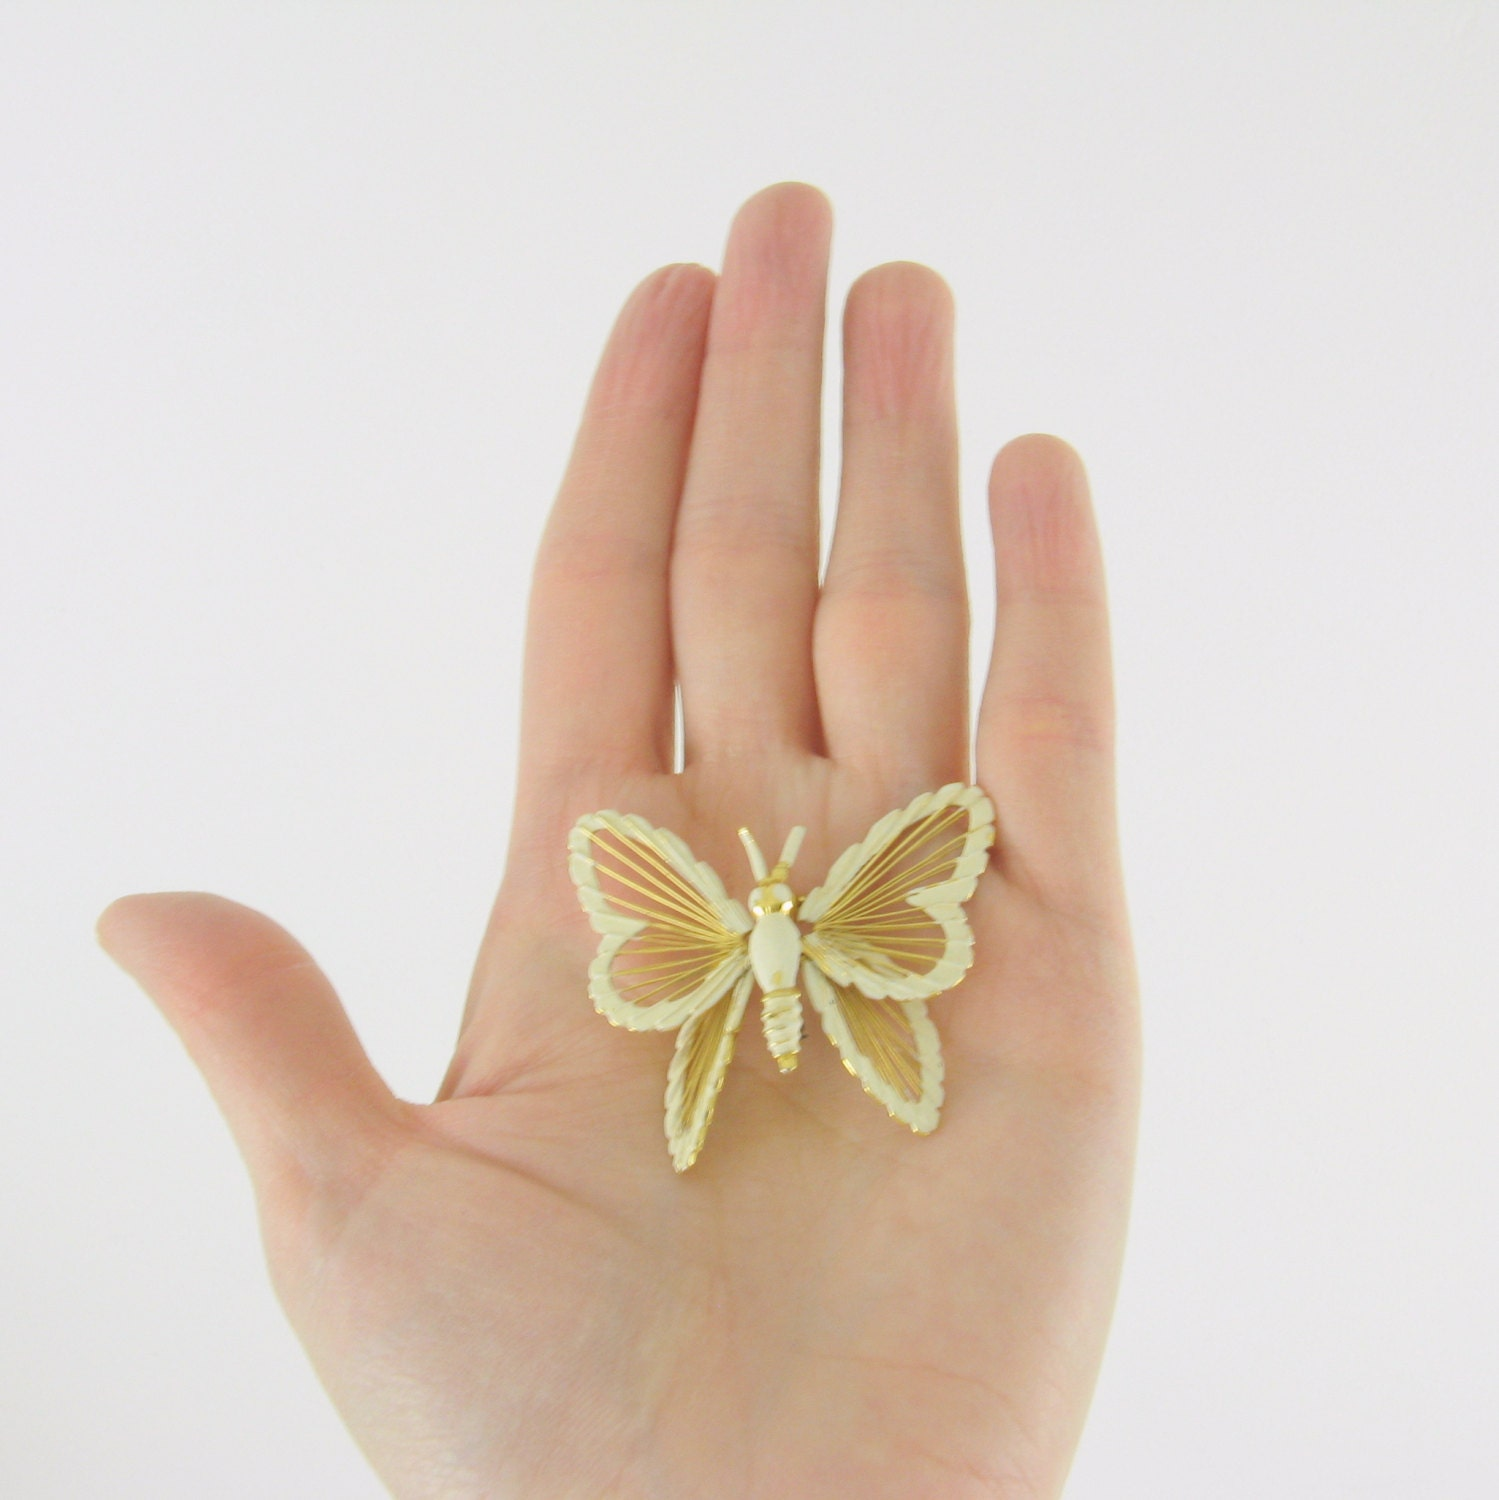 Vintage Monet Butterfly Brooch - 1960s Gold and Cream Enamel - TwoMoxie